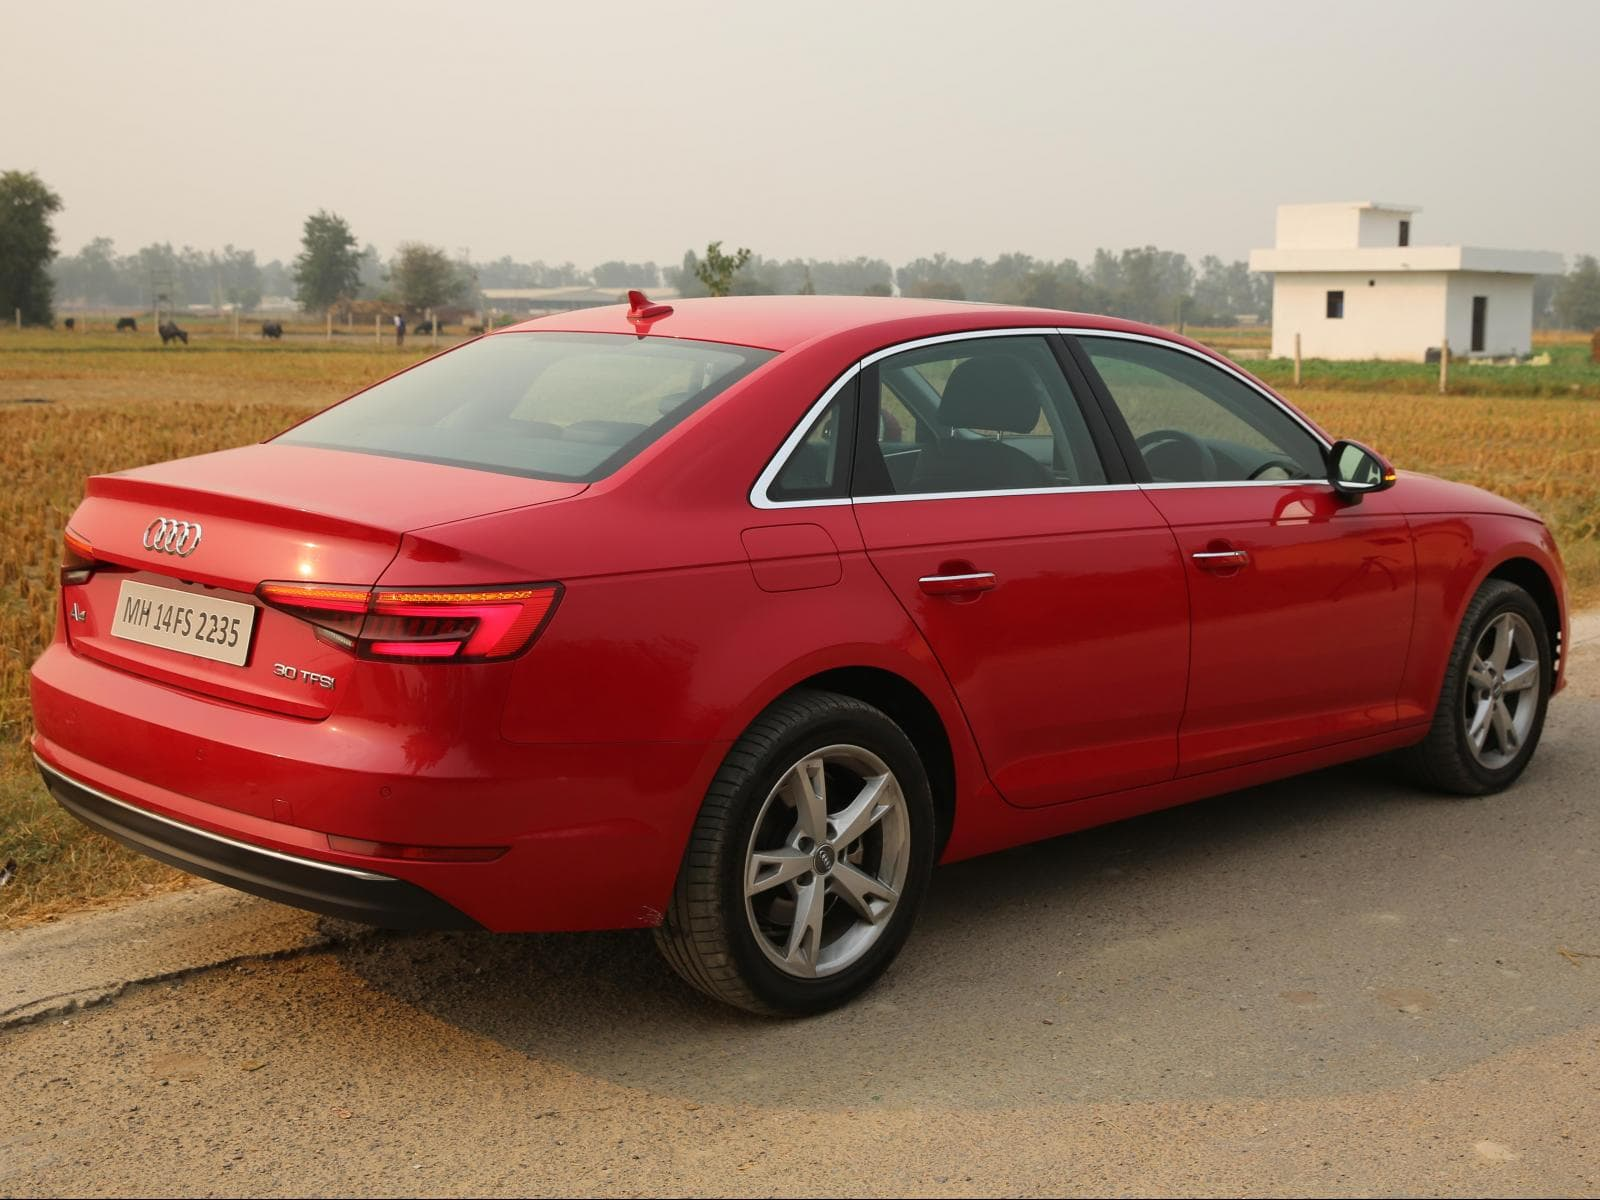 Audi A Wallpapers Free Download - Car insurance for audi a4